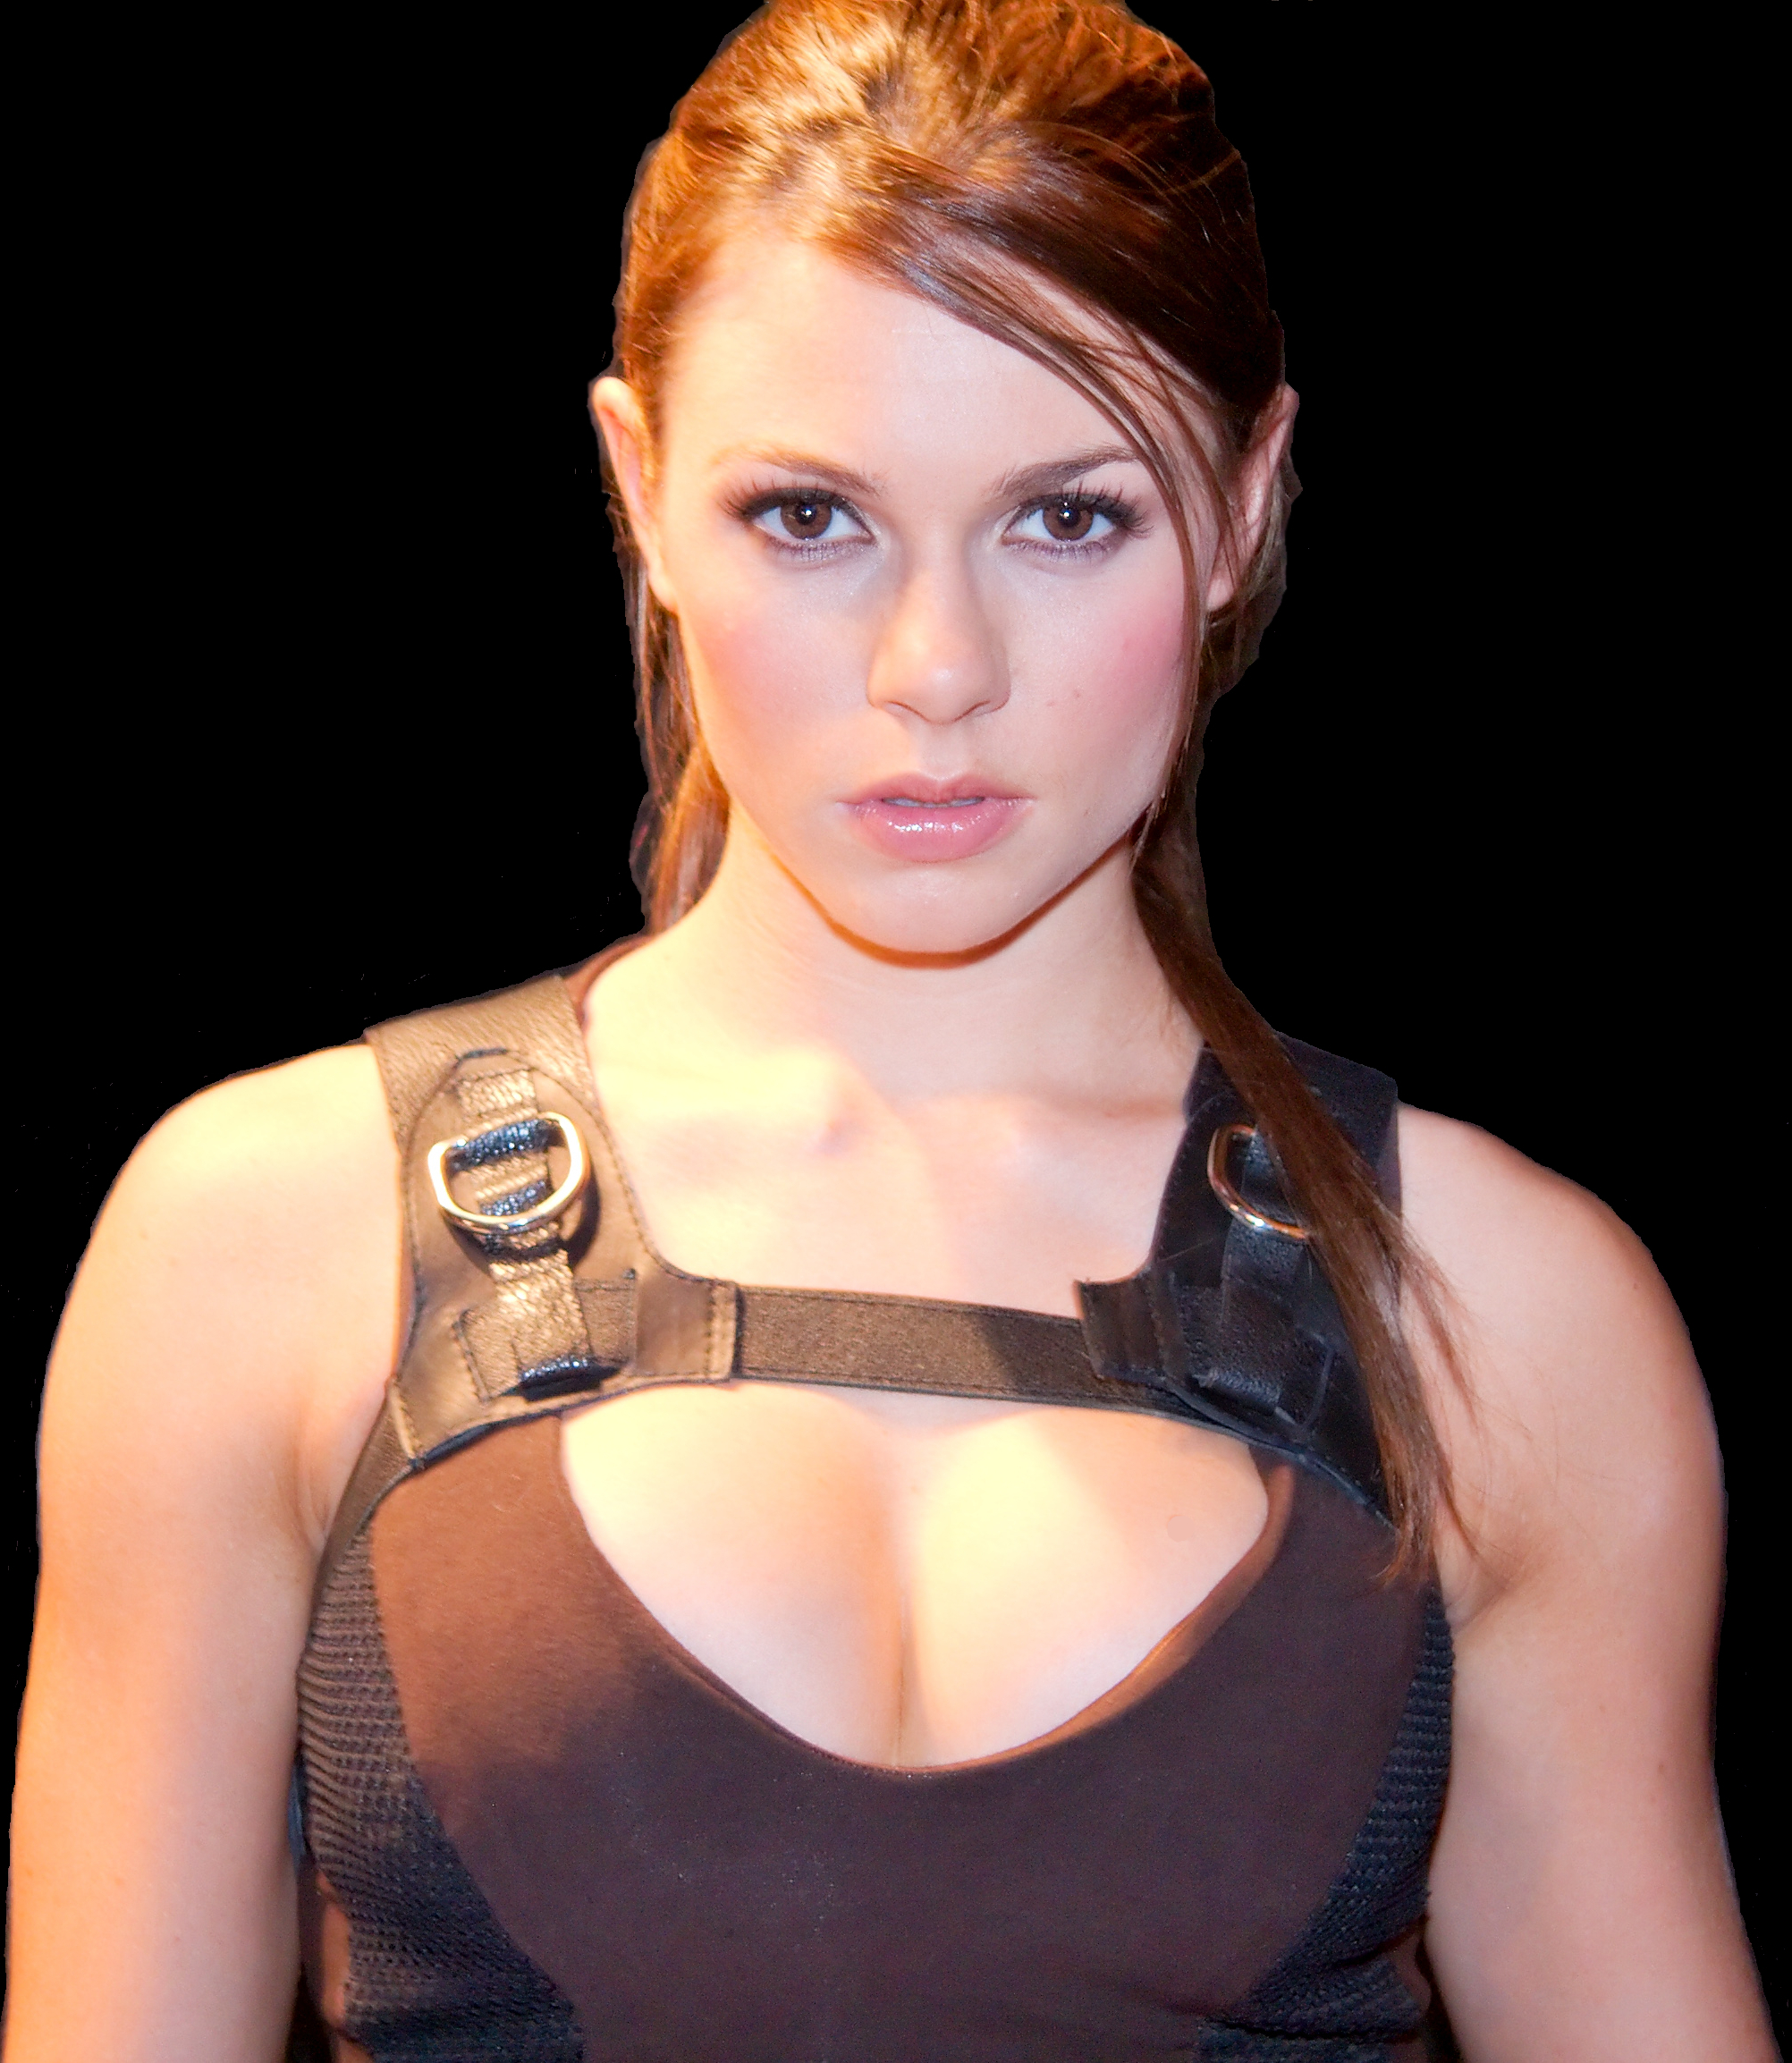 Lara Croft - Wikipedia, the free encyclopedia